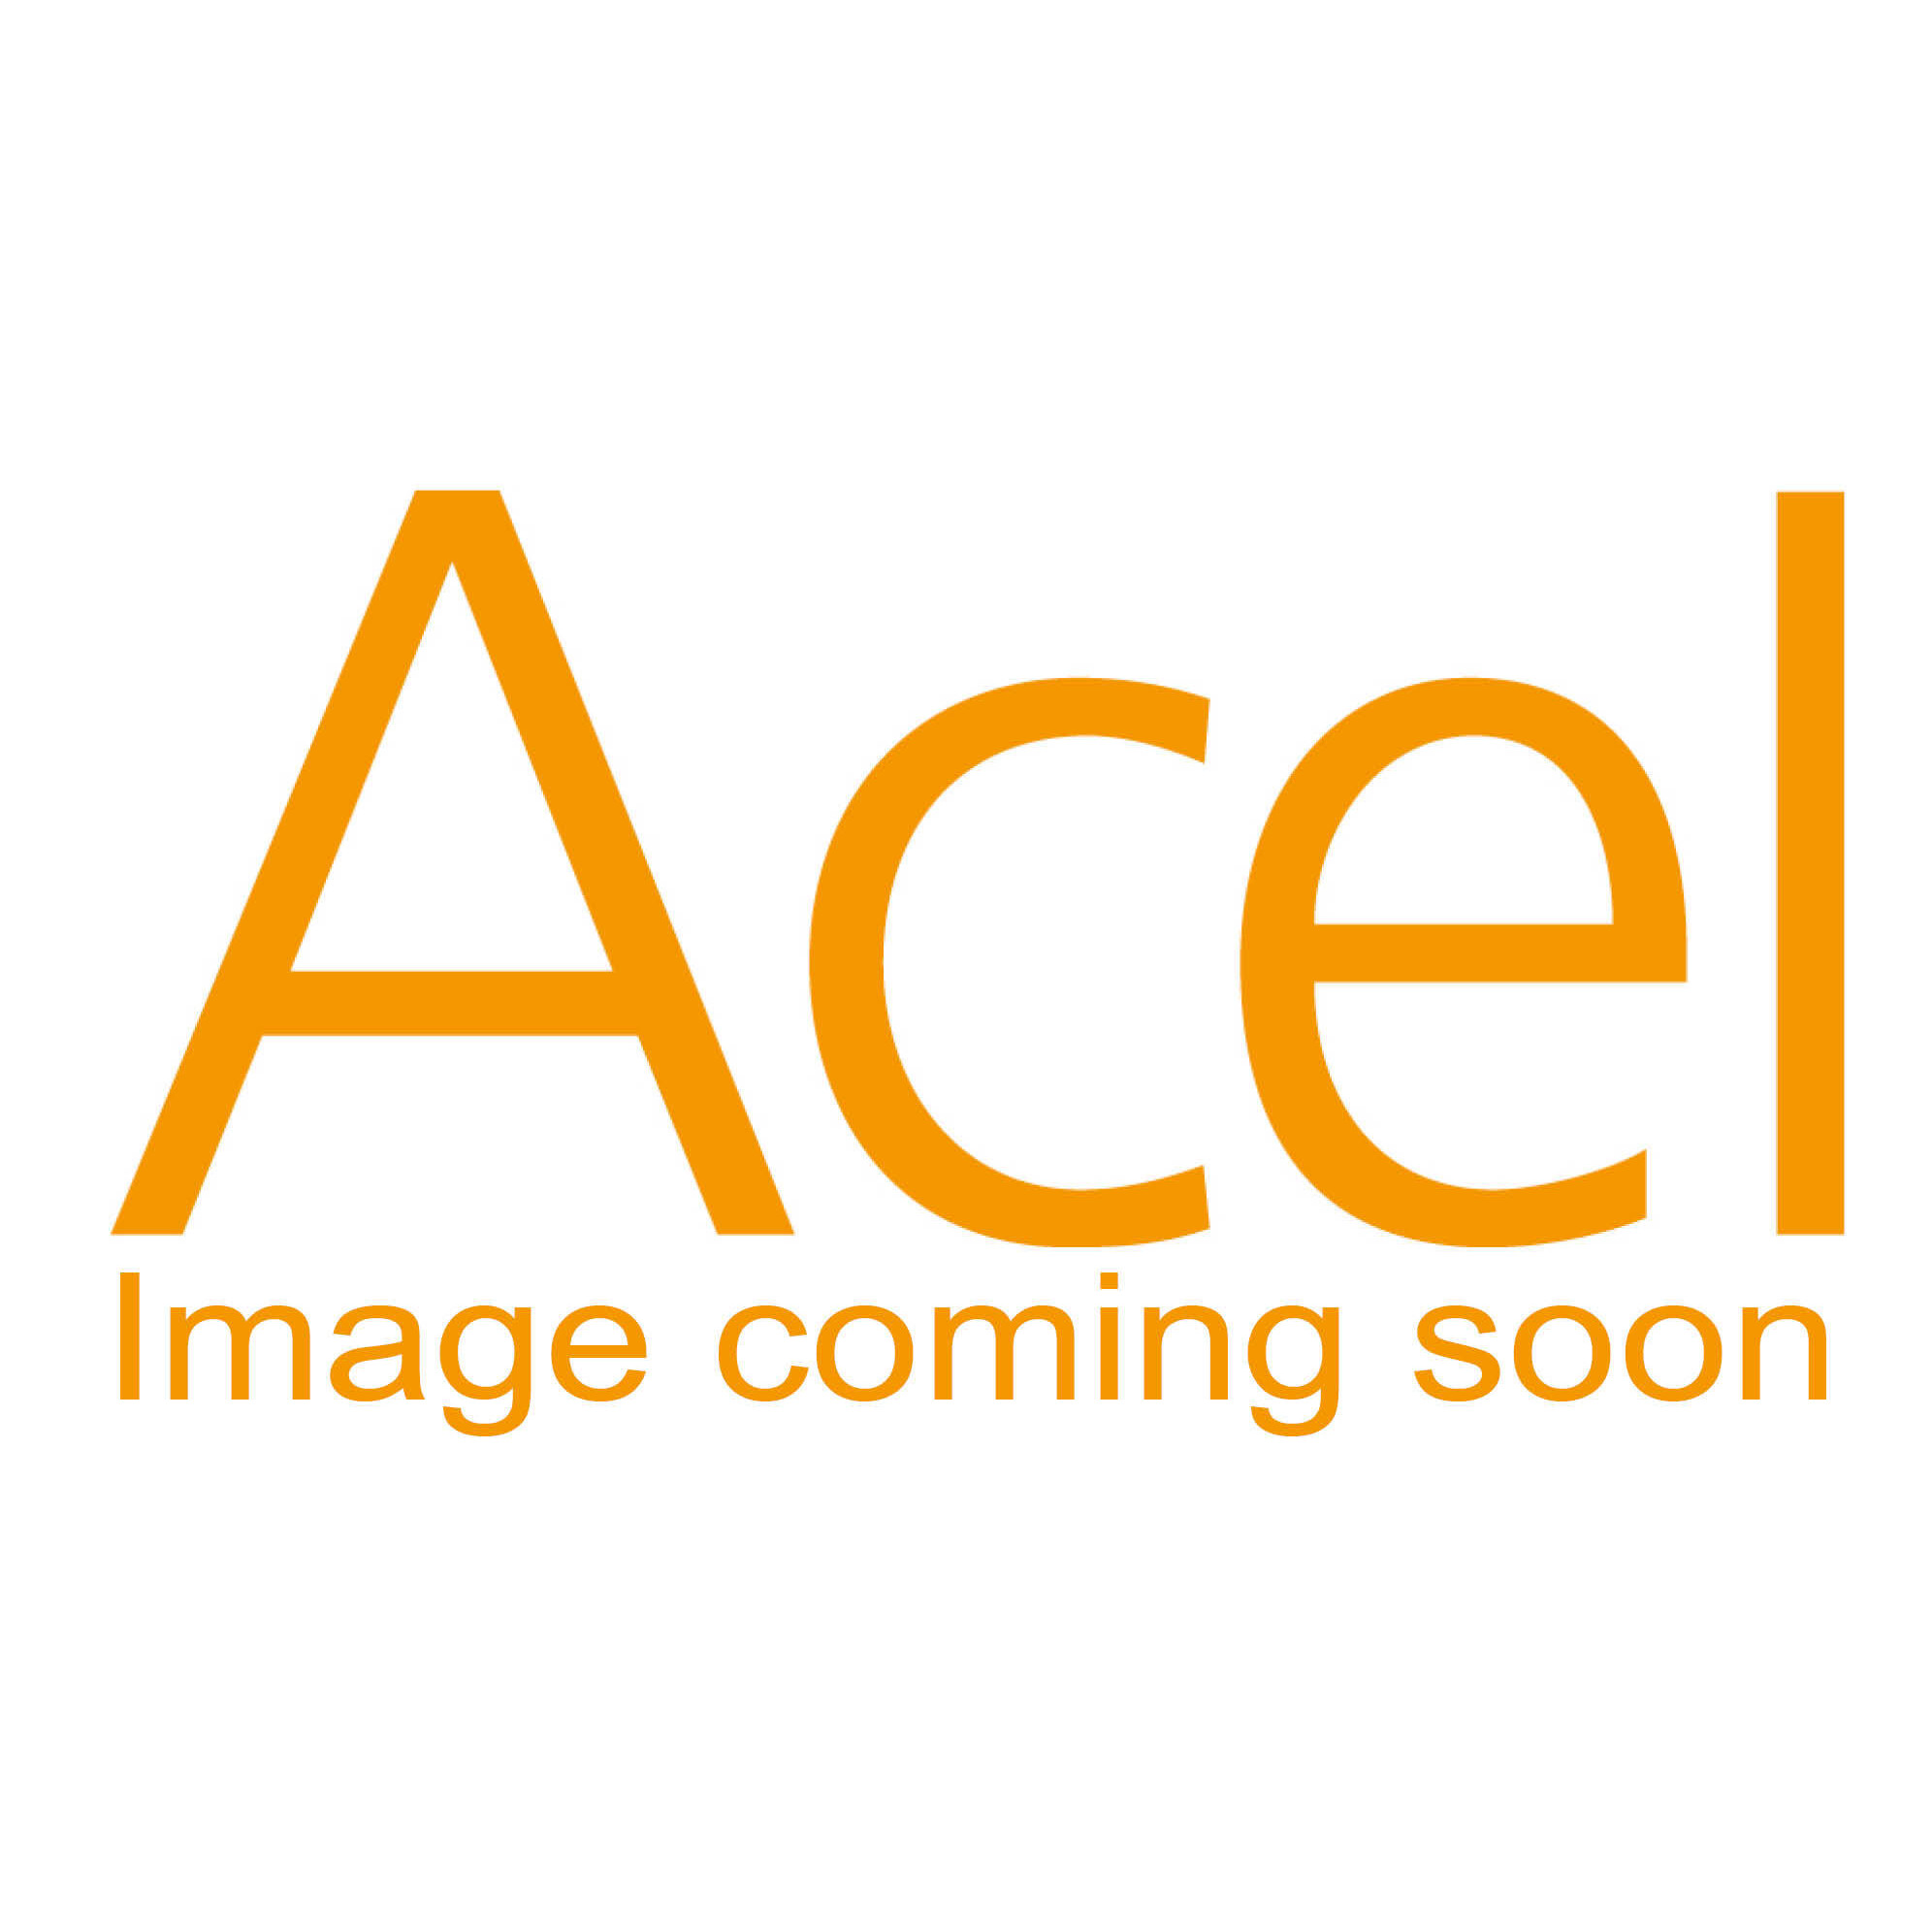 Self Adhesive Vinyl labels - Mixed cable junction box label - 80 x 30 & 50 dia - 5 sheets